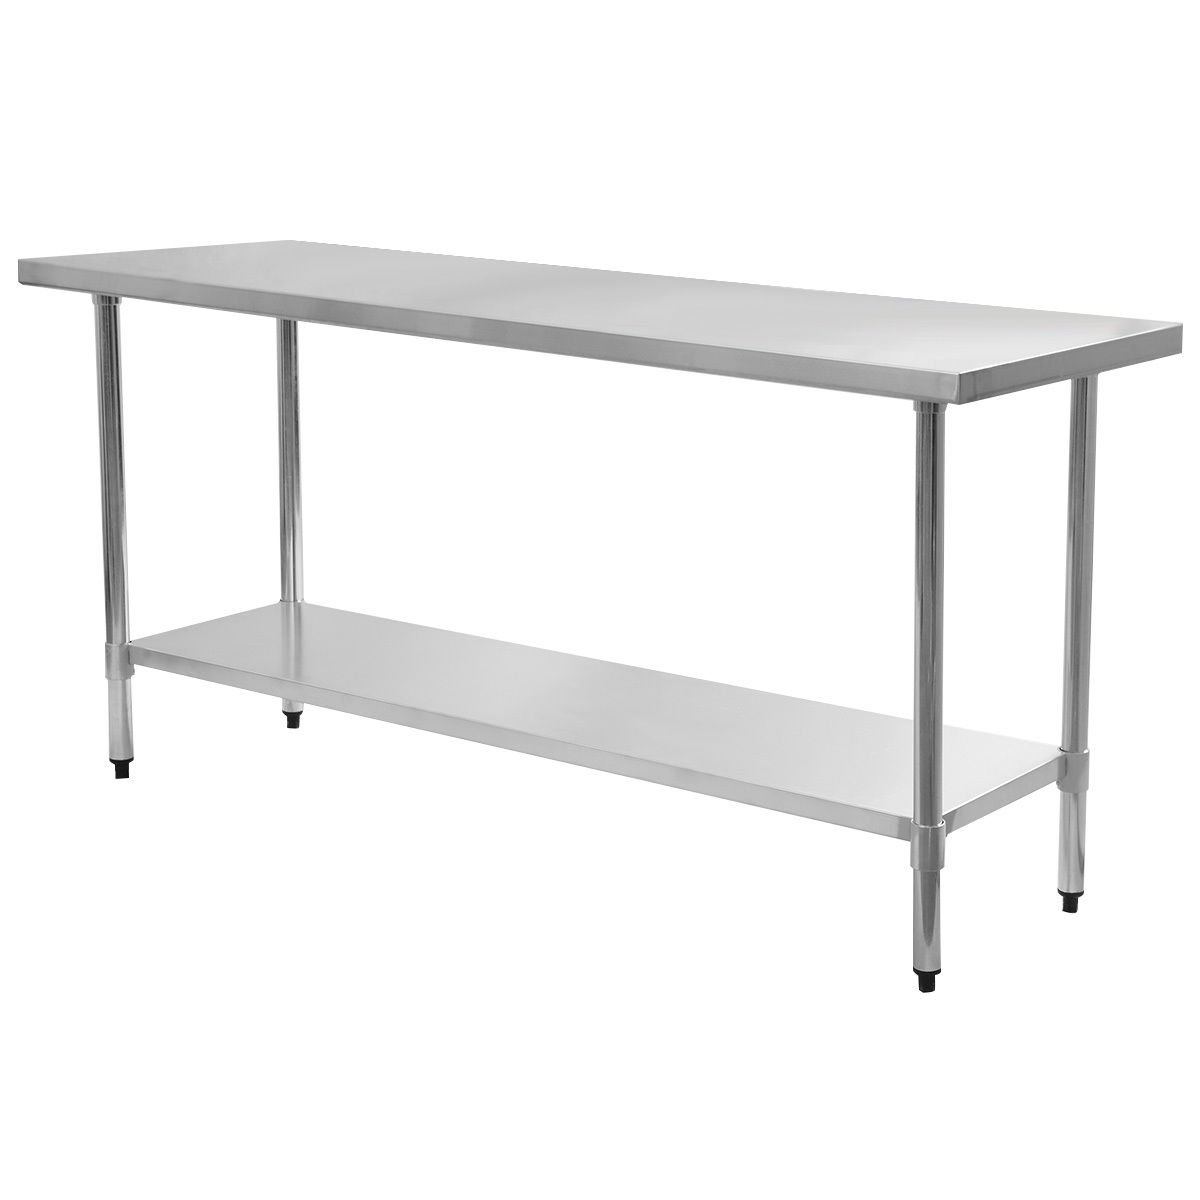 "And Heavy Duty Durability Easy Cleaning 24"" x 72"" Stainless Steel Work Prep Table Commercial Kitchen Restaurant Bars Cafeterias Garage And Your Home"